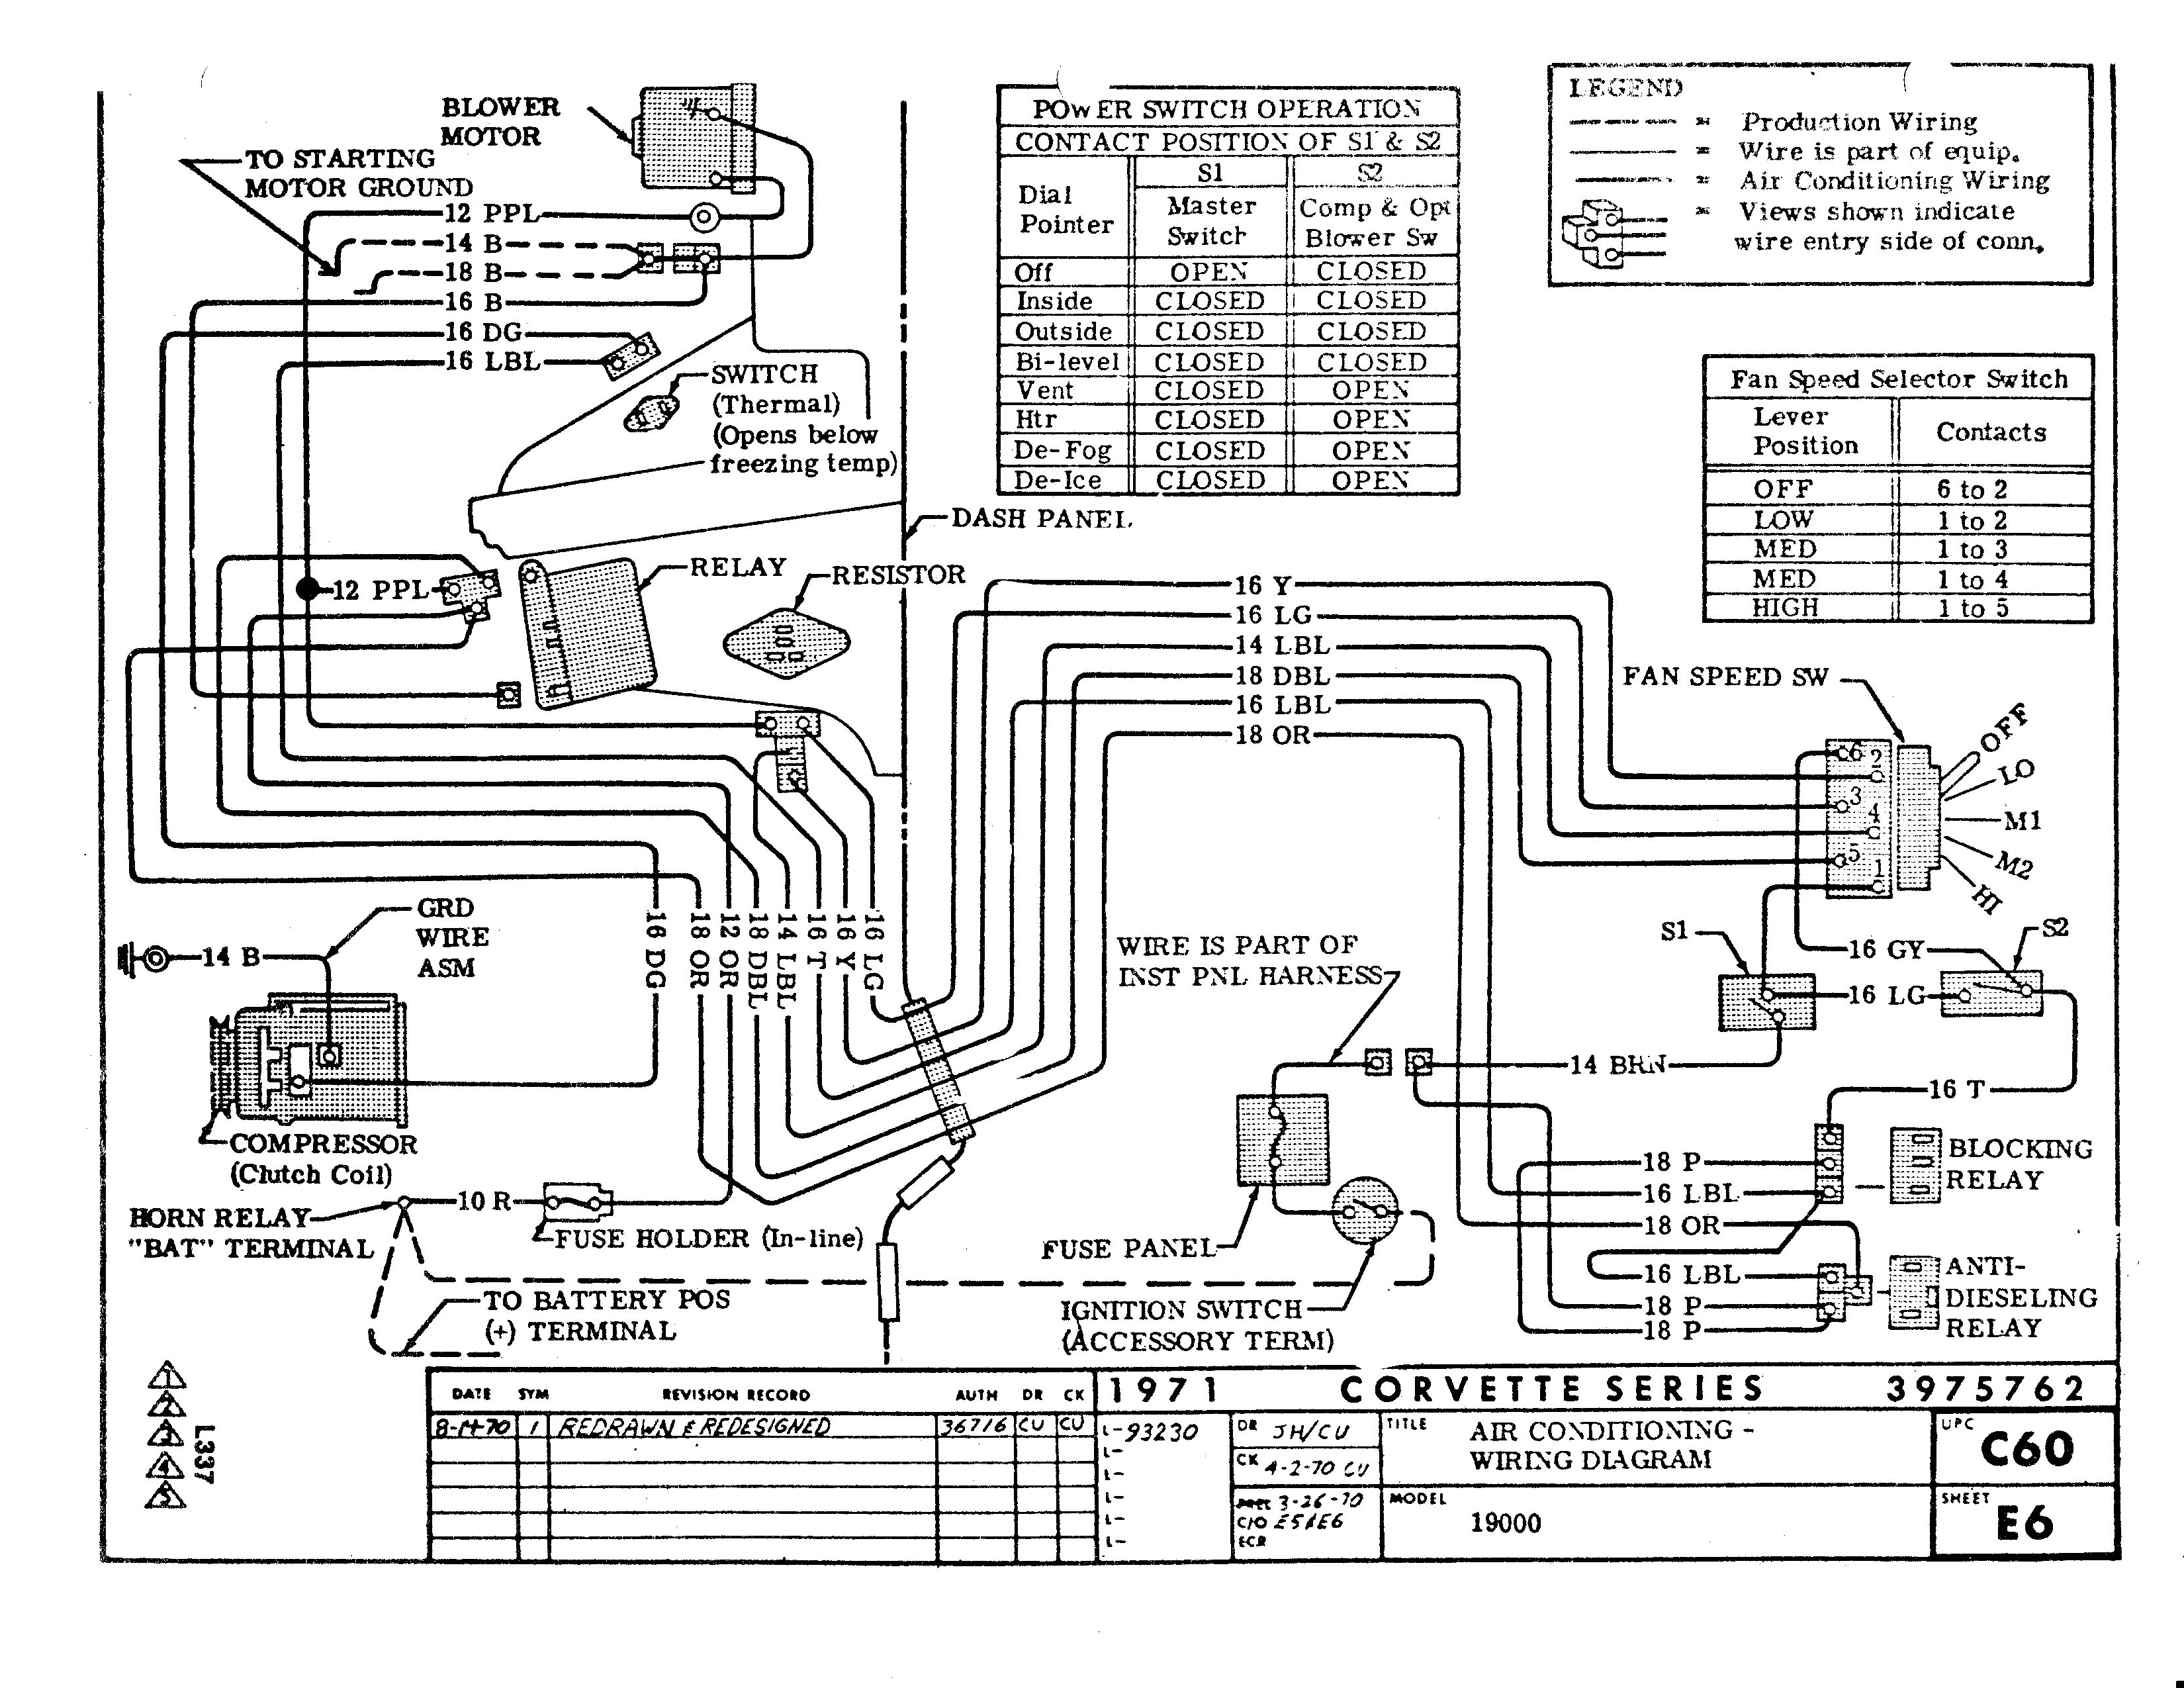 Diagram Corvette Ac Wiring Diagram Full Version Hd